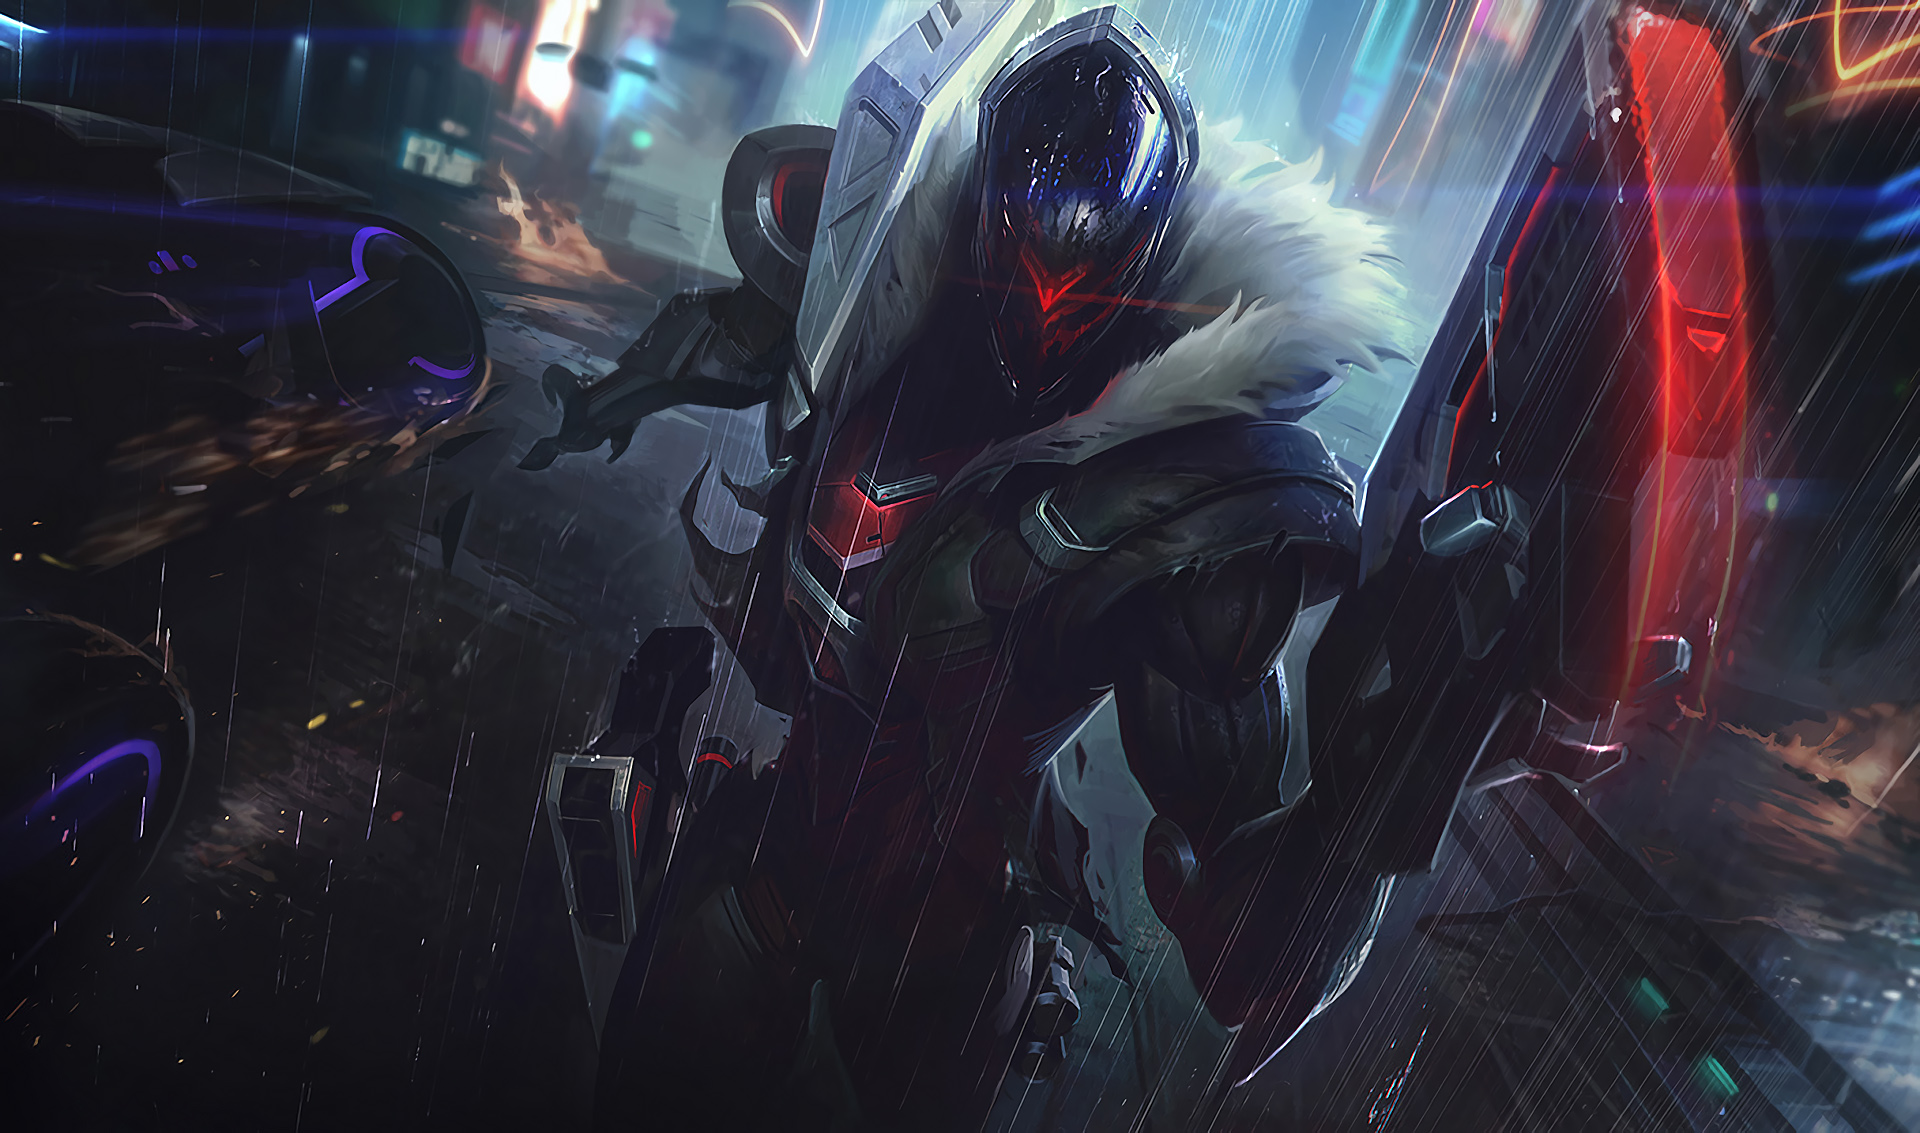 Hd Wallpapers Artworks For League Of: PROJECT Jhin Splash League Of Legends Wallpapers